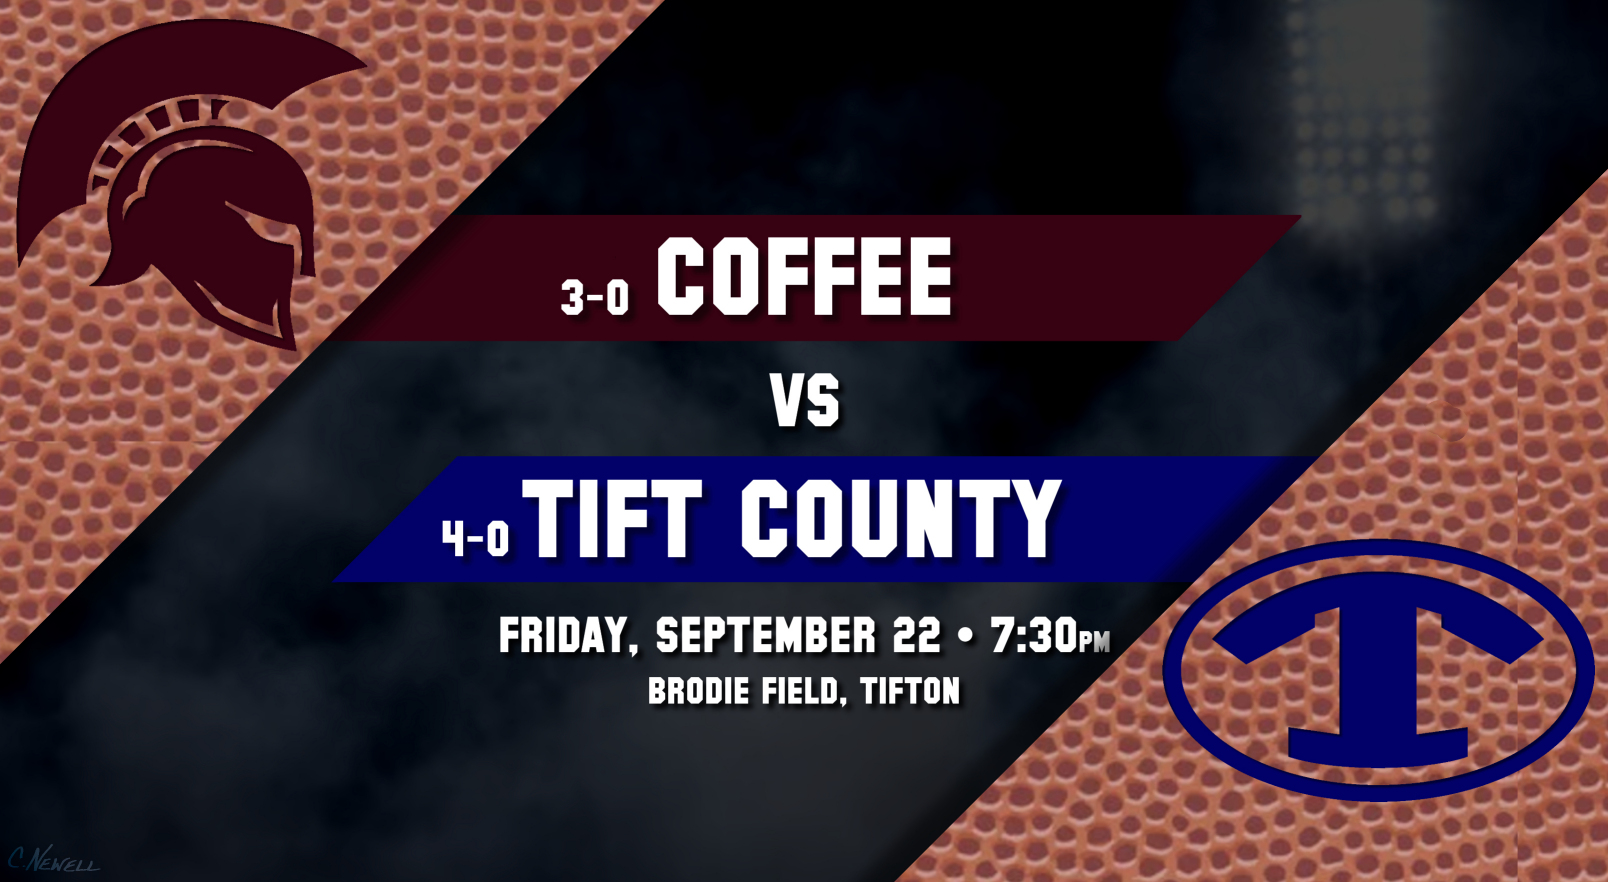 Coffee vs Tift, September 22, 2017